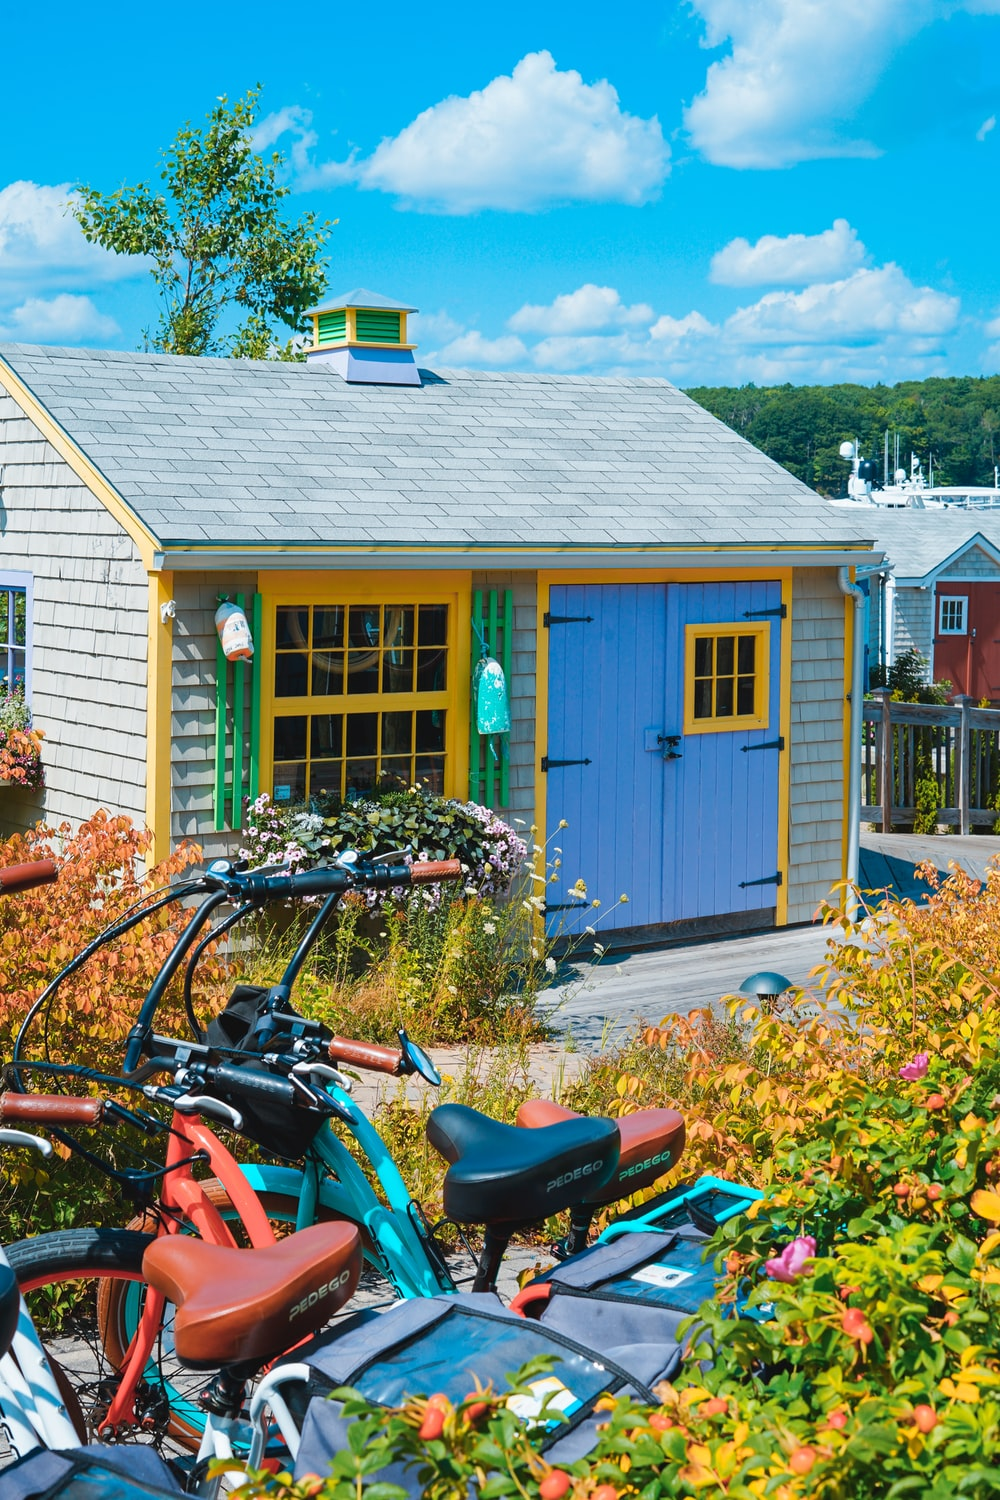 bicycles parked near blue and gray house during daytime